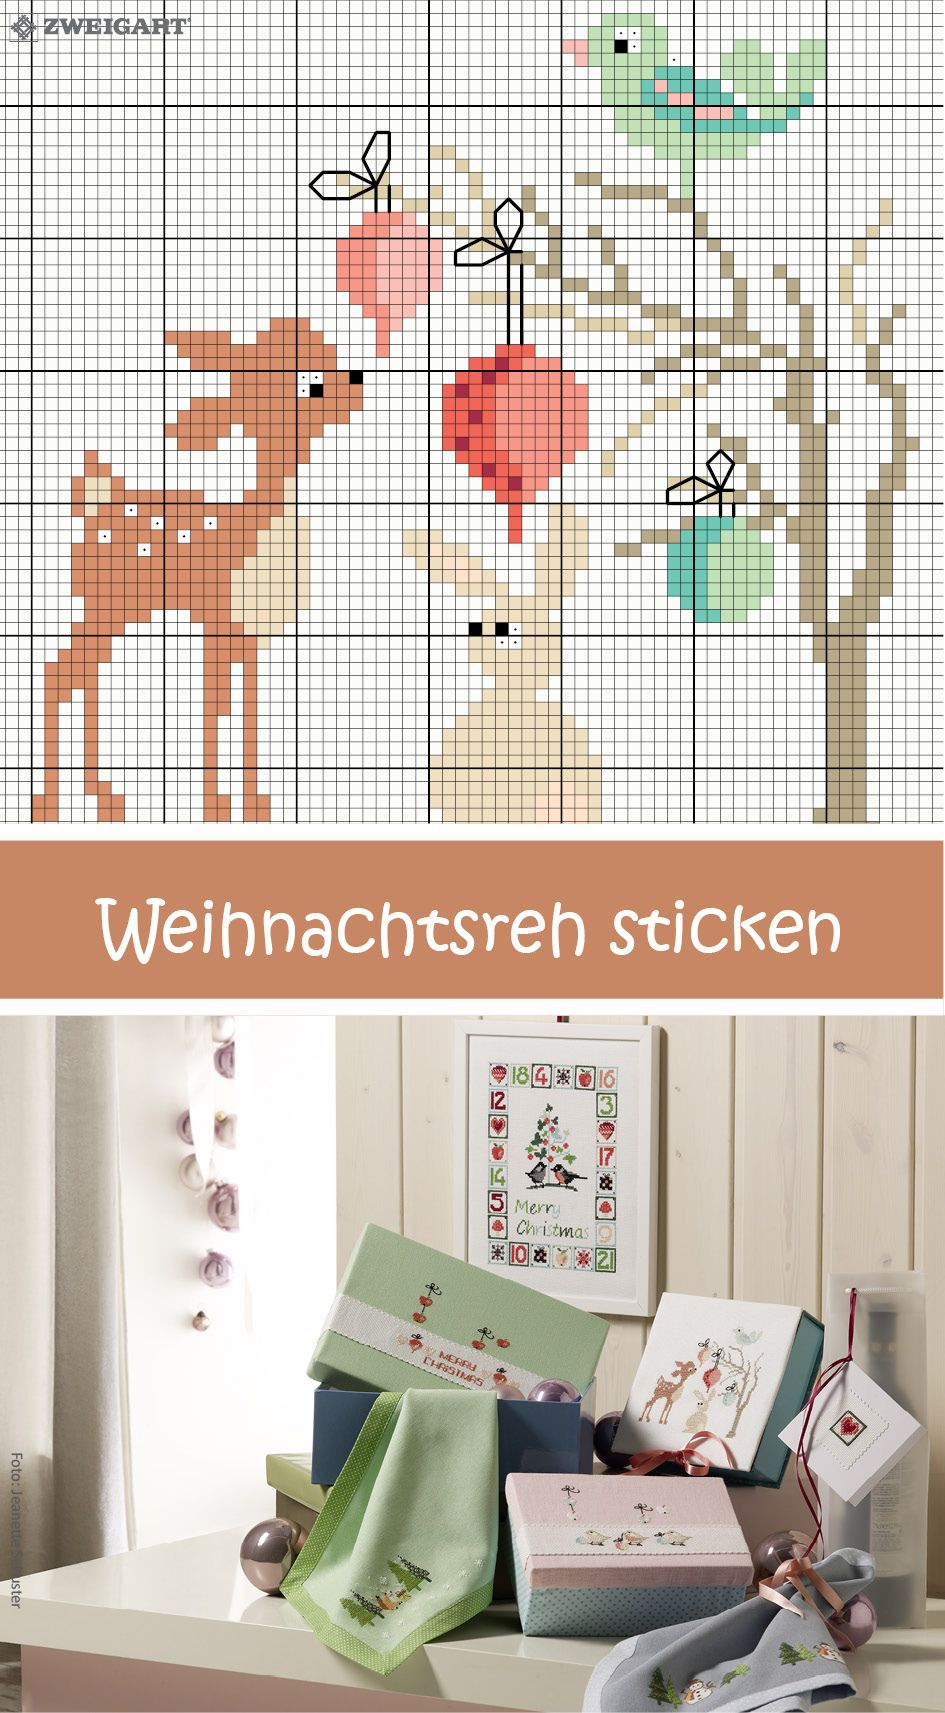 s e weihnachtsdose mit reh sticken sticken kreuzstich. Black Bedroom Furniture Sets. Home Design Ideas